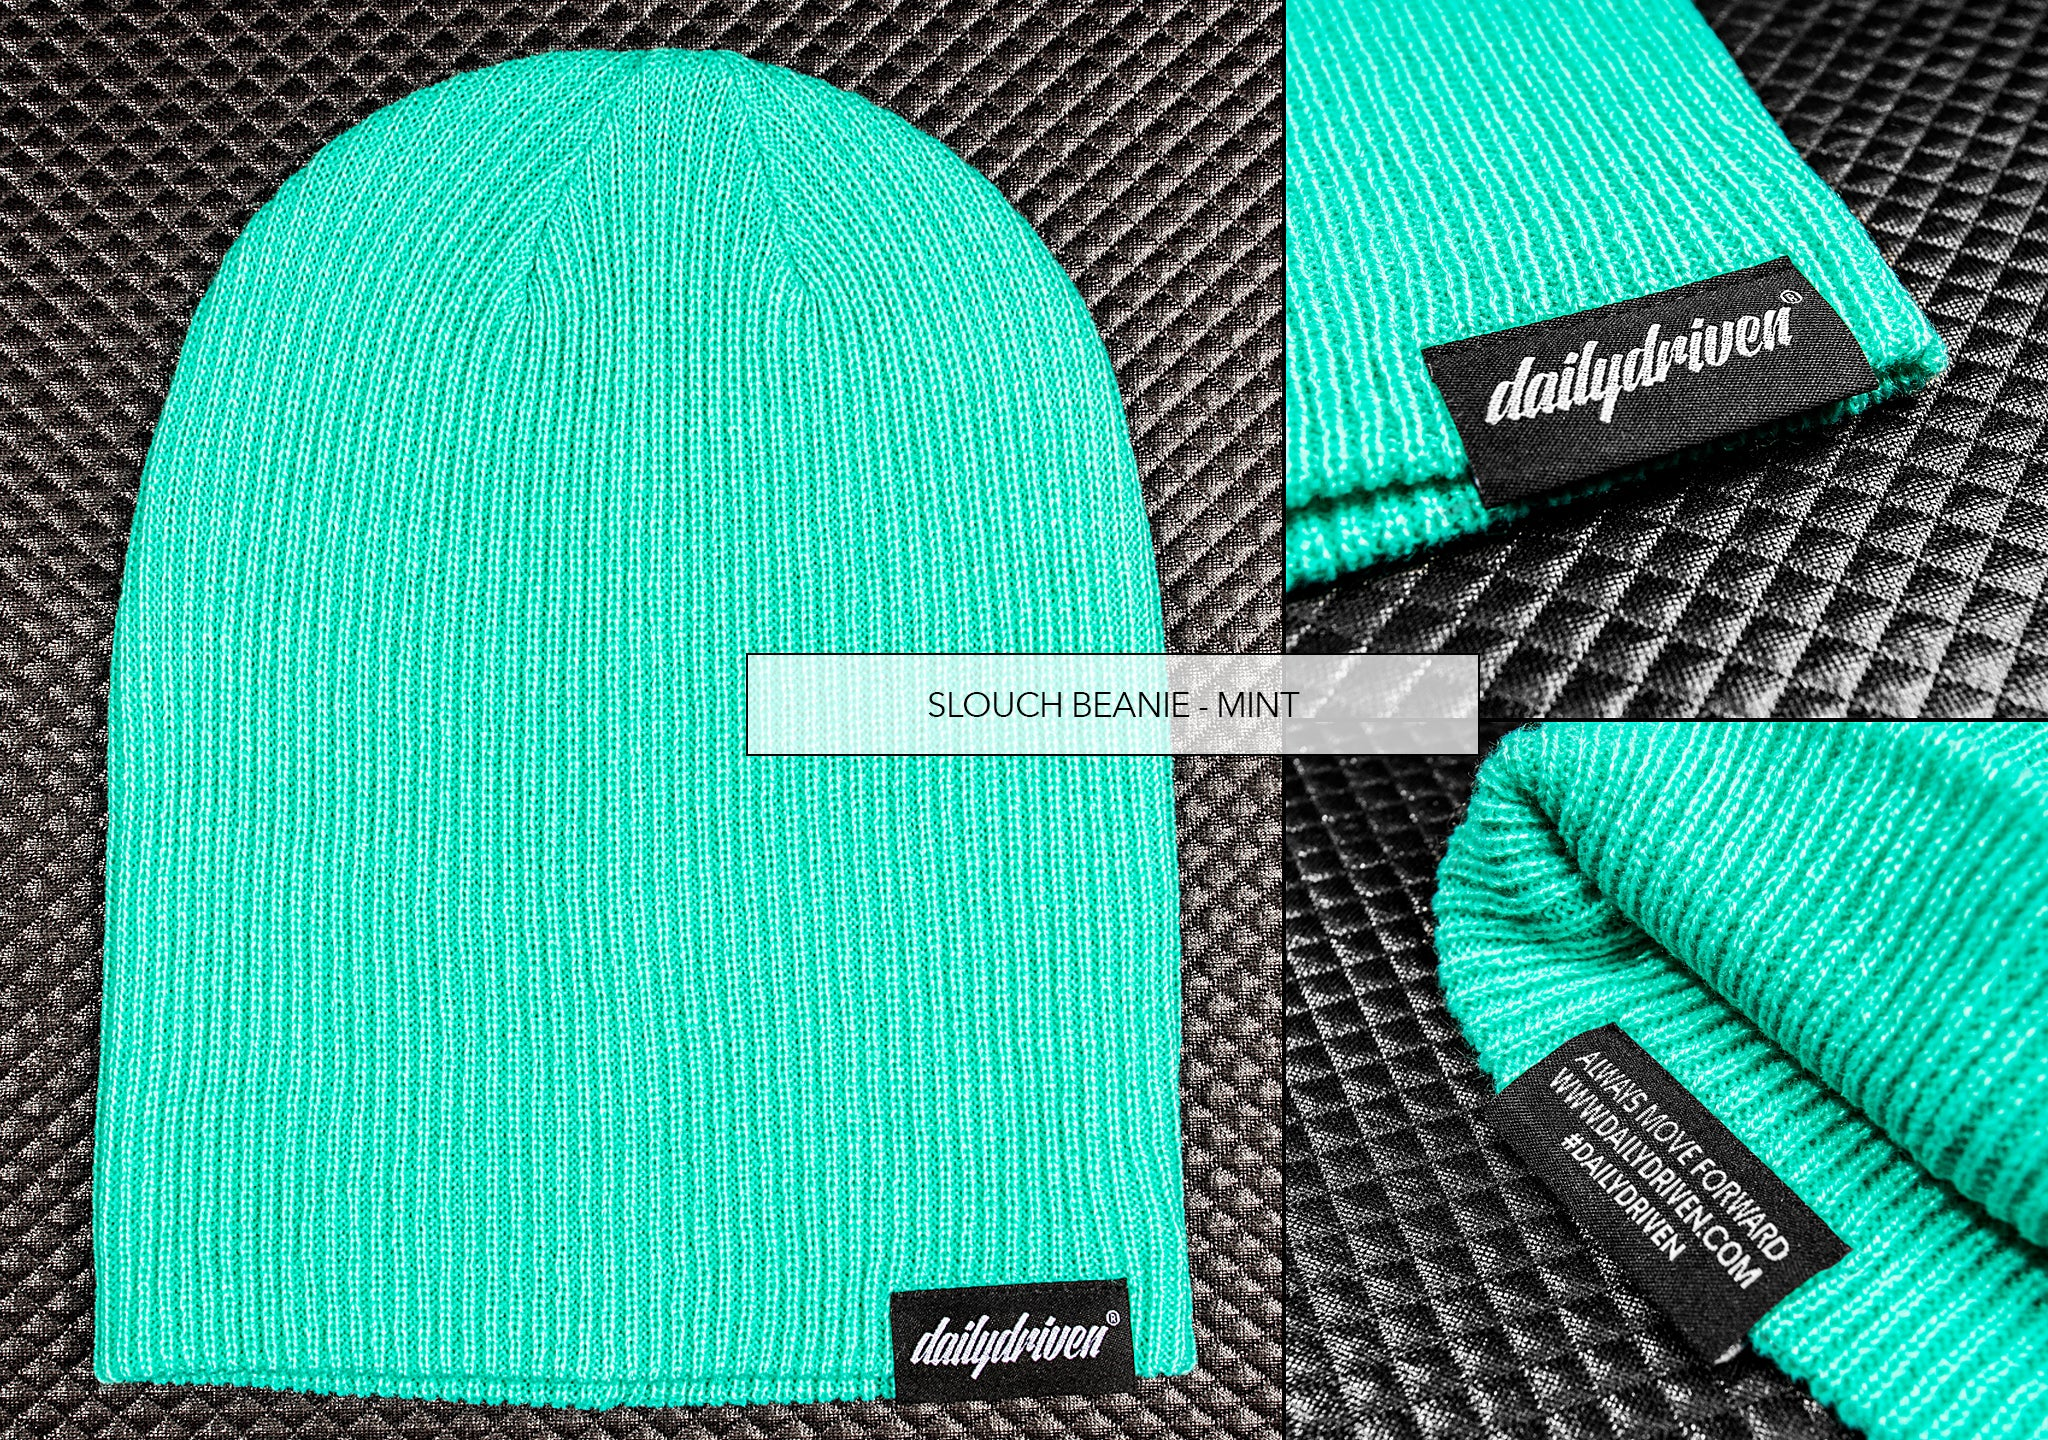 DailyDriven Slouch Beanie Mint